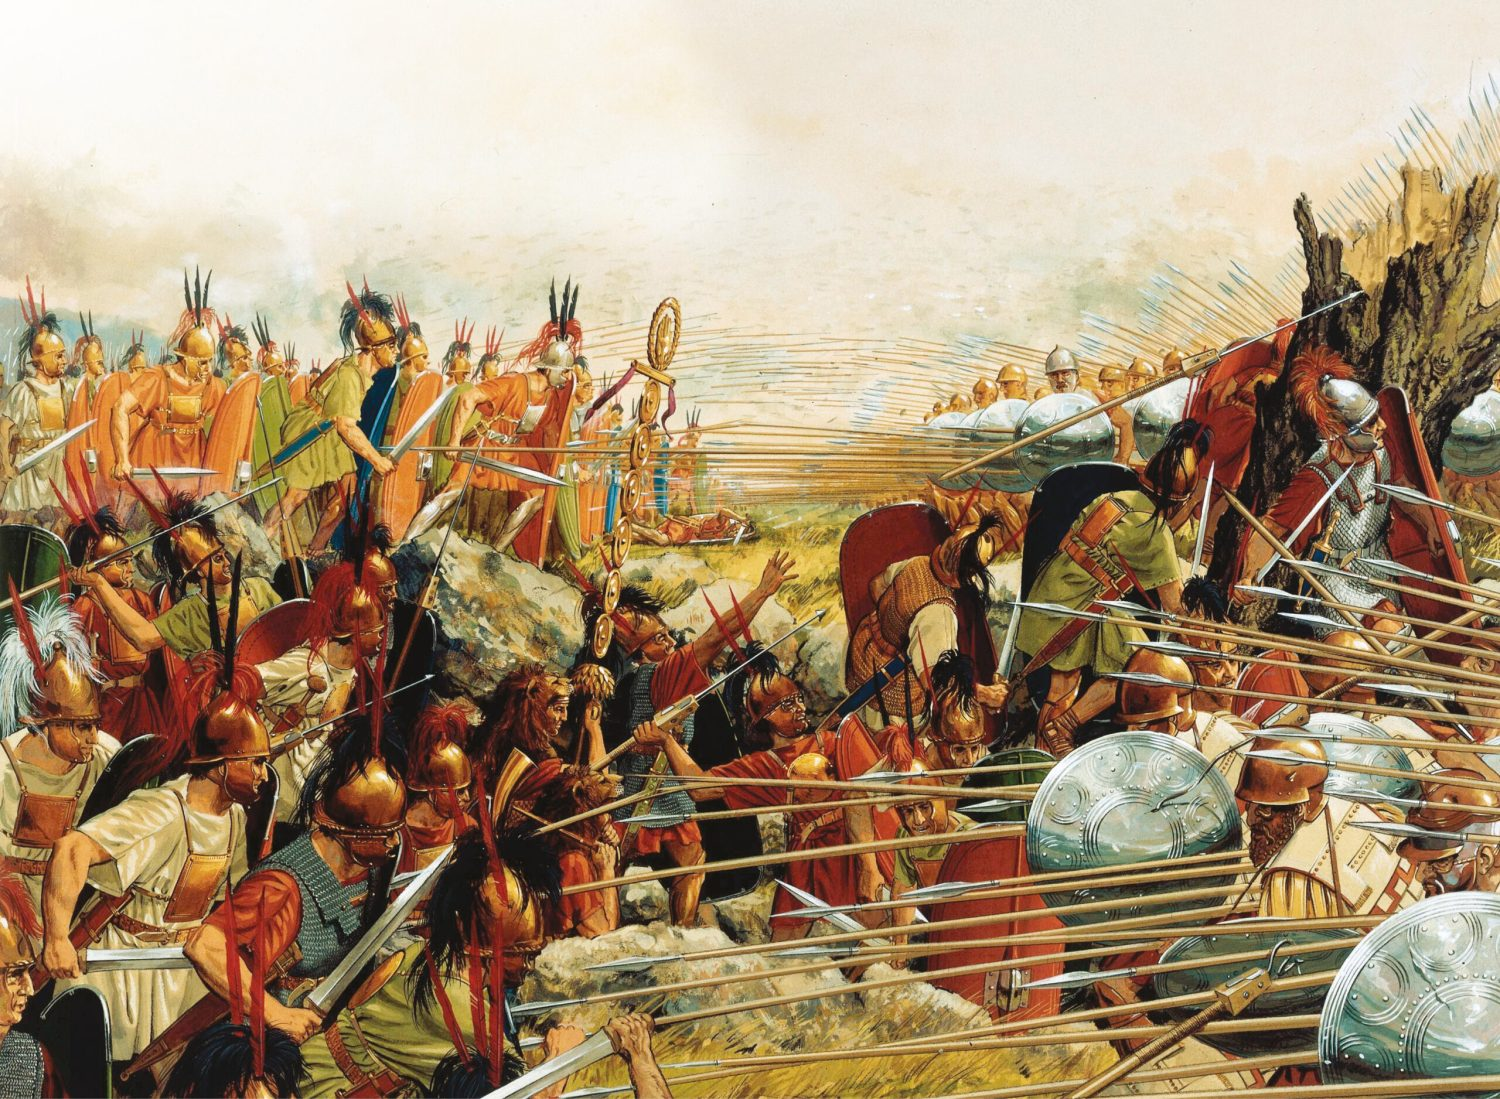 left Peter Connolly's reconstruction captures the very different fighting formations of the Macedonian phalanx and the Roman legion. This collision between two alternative ways of war decided the fate of the eastern Mediterranean in the 2nd century BC.